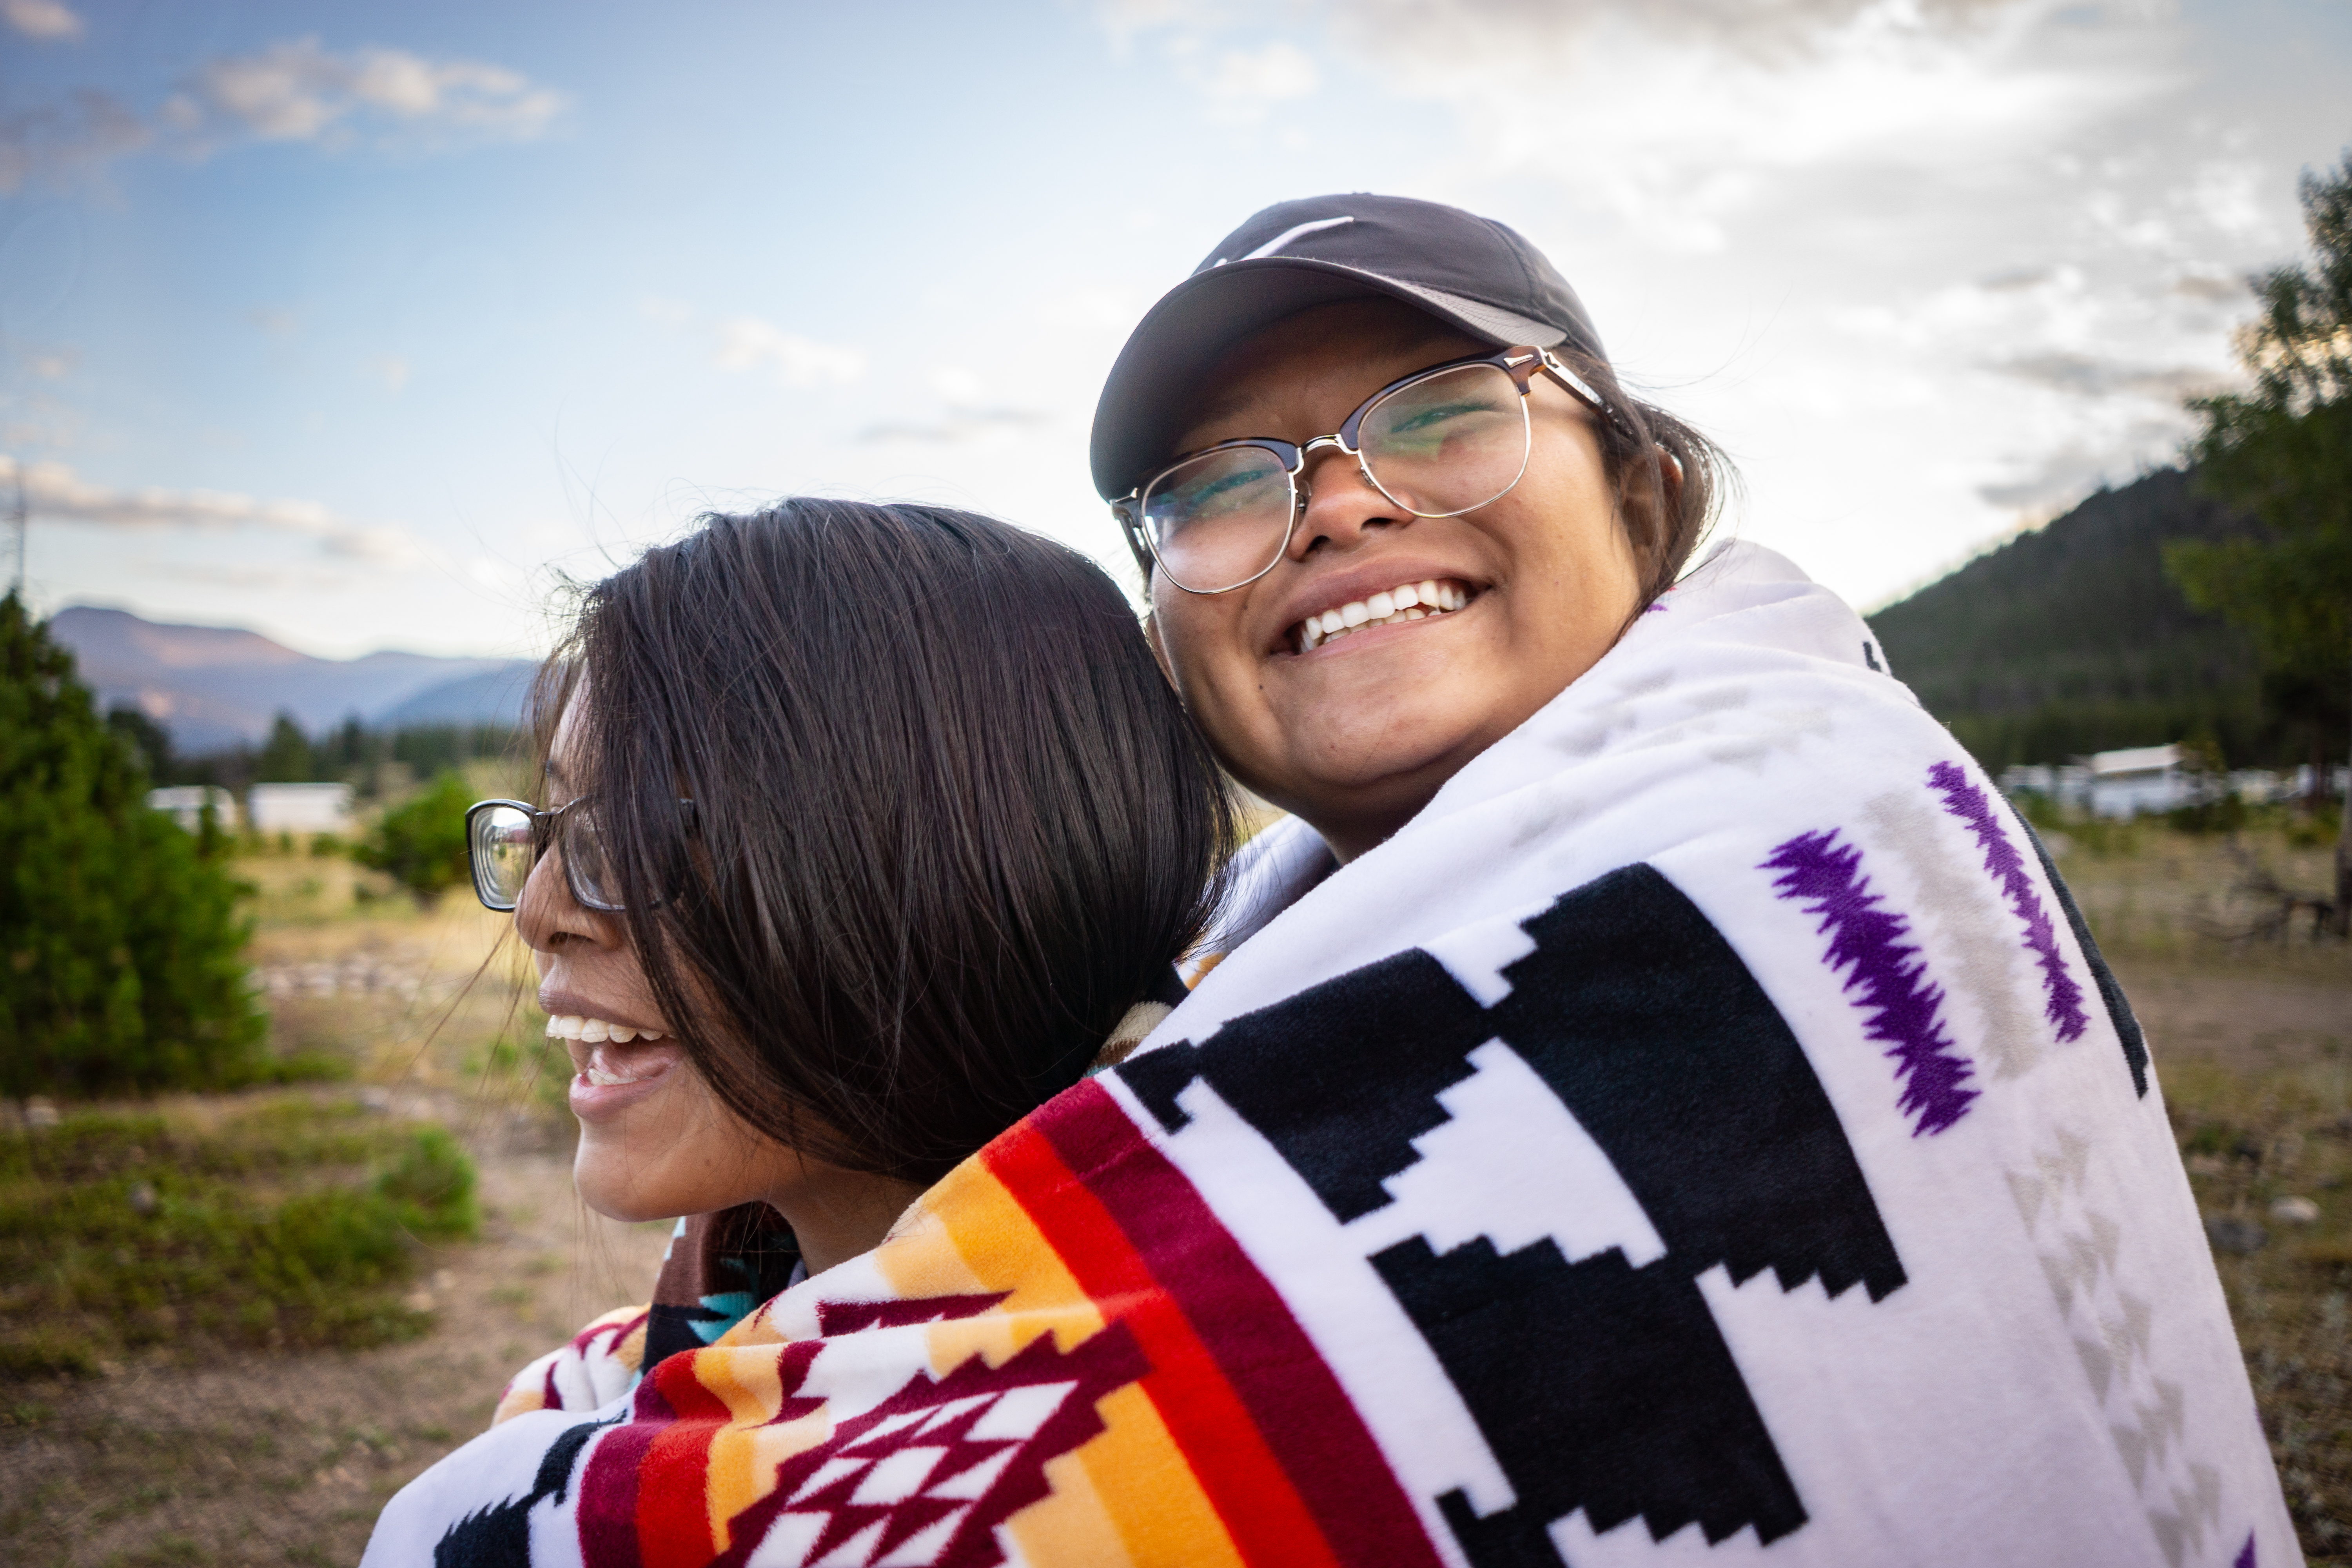 A student of Holbrook Indian School, a Seventh-day Adventist boarding school in Holbrook, Arizona that provides a safe haven for Navajo children, smiles during an activity from last school year.